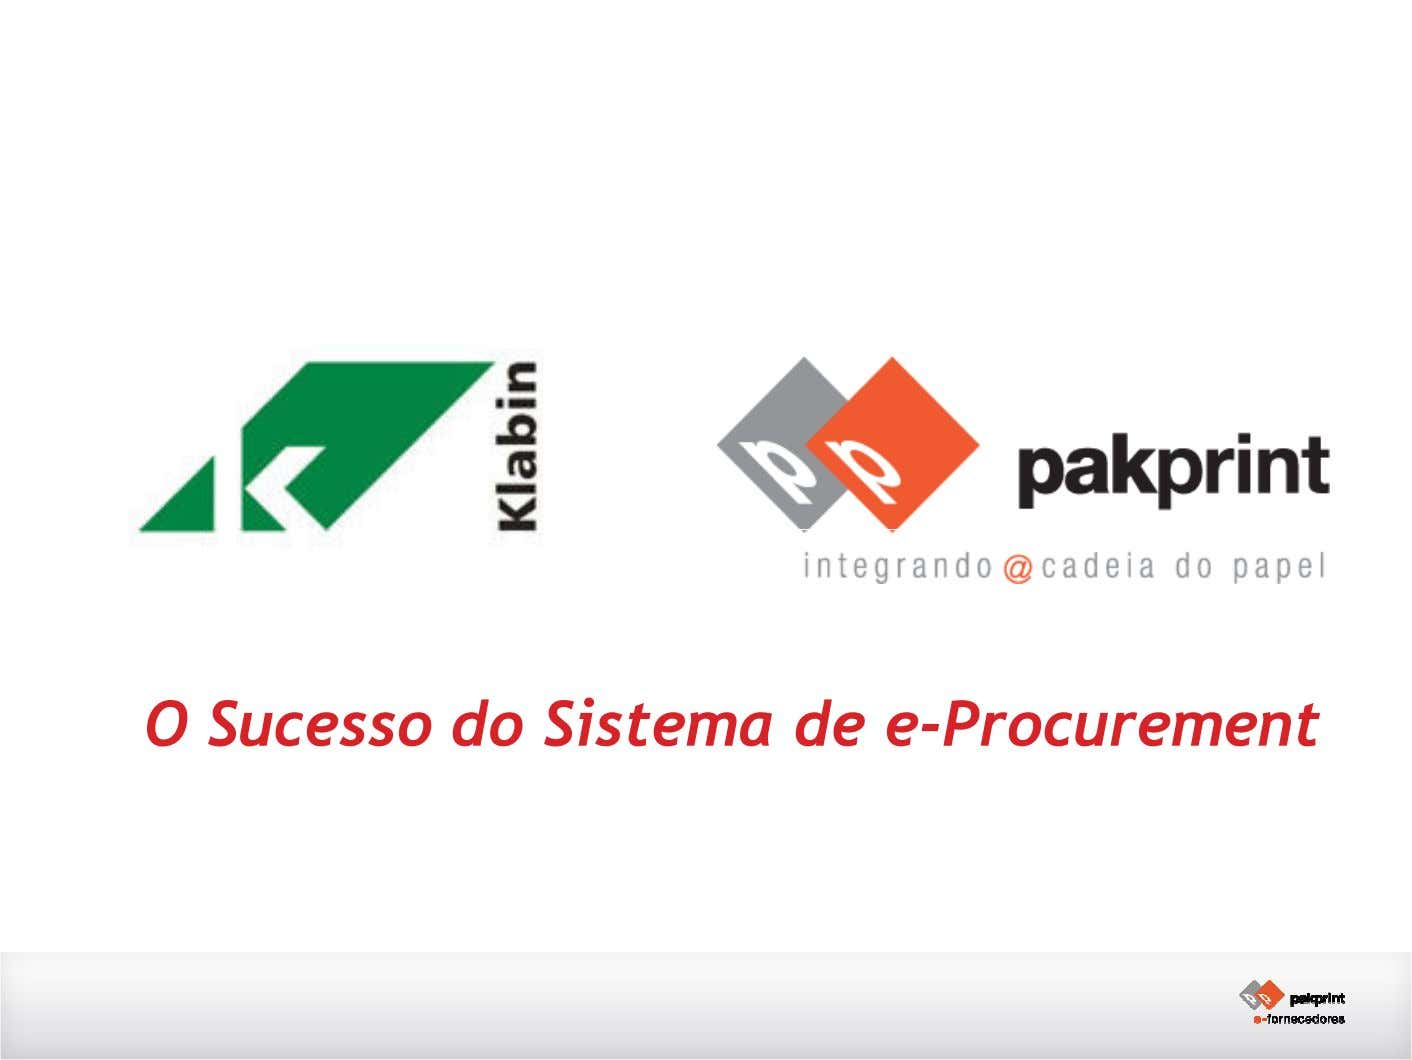 O Sucesso do Sistema de e-Procurement